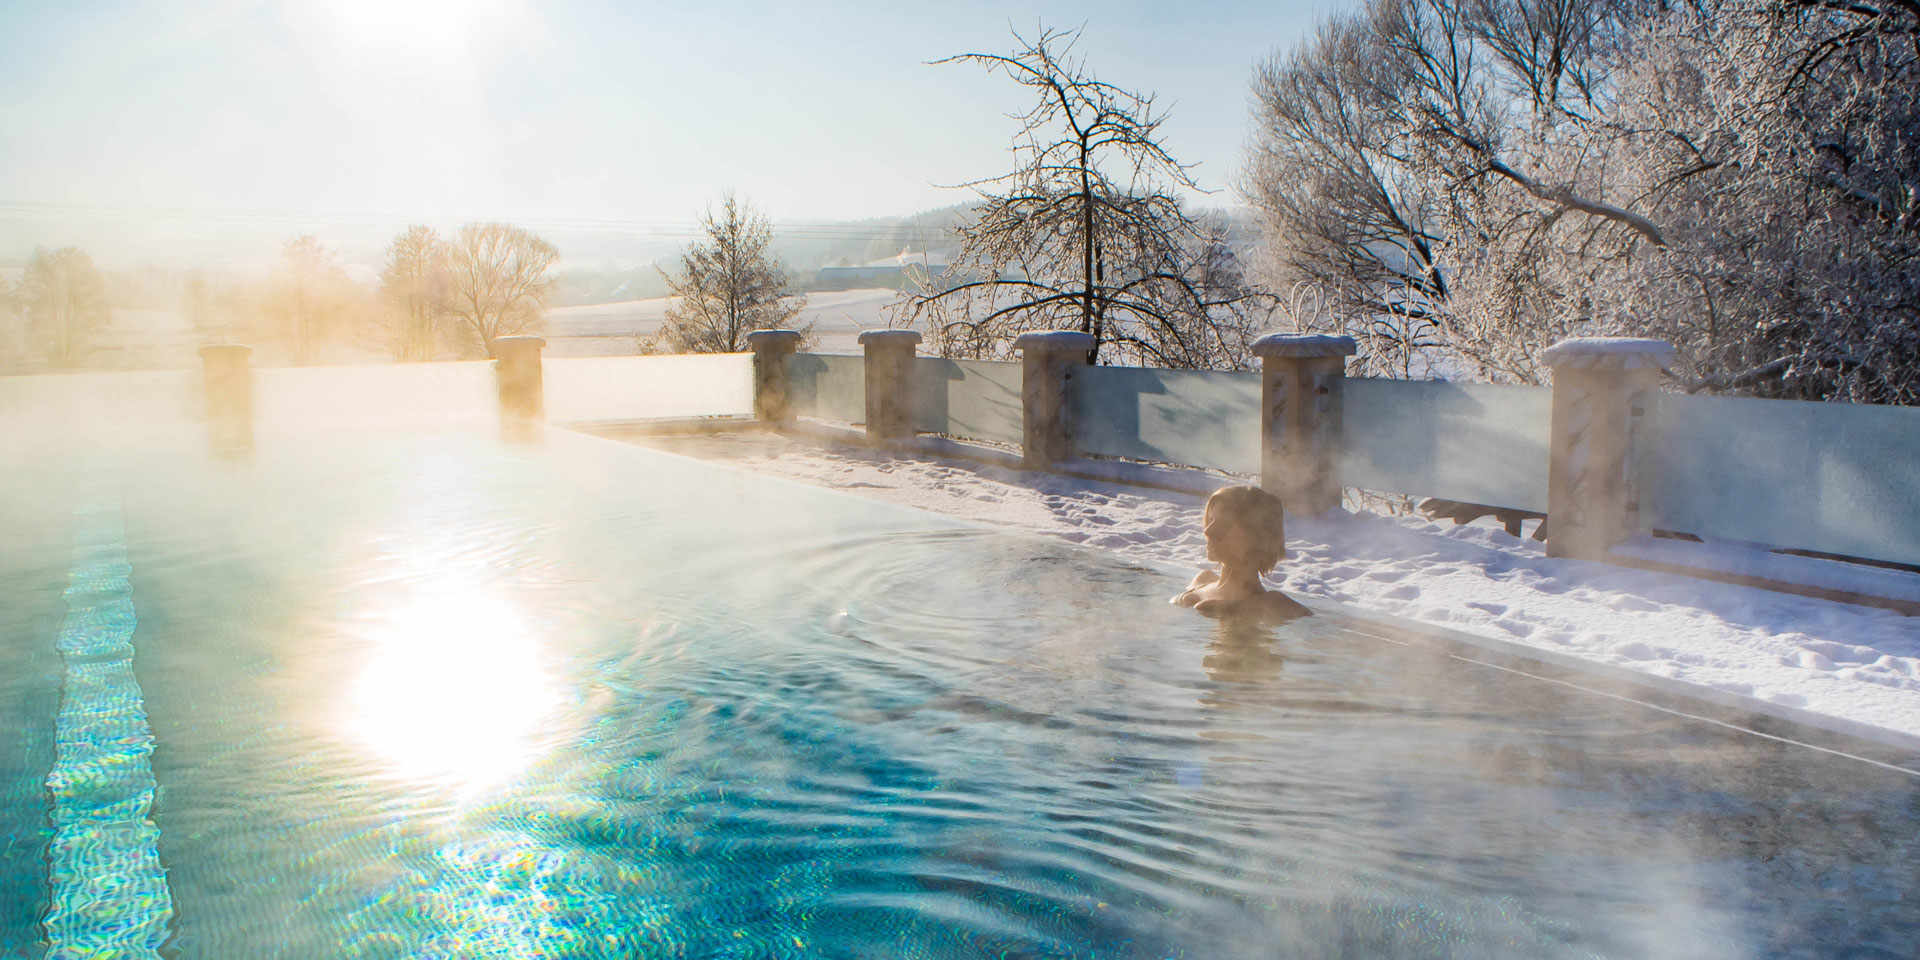 Sky-Infinity-Pool im Winter